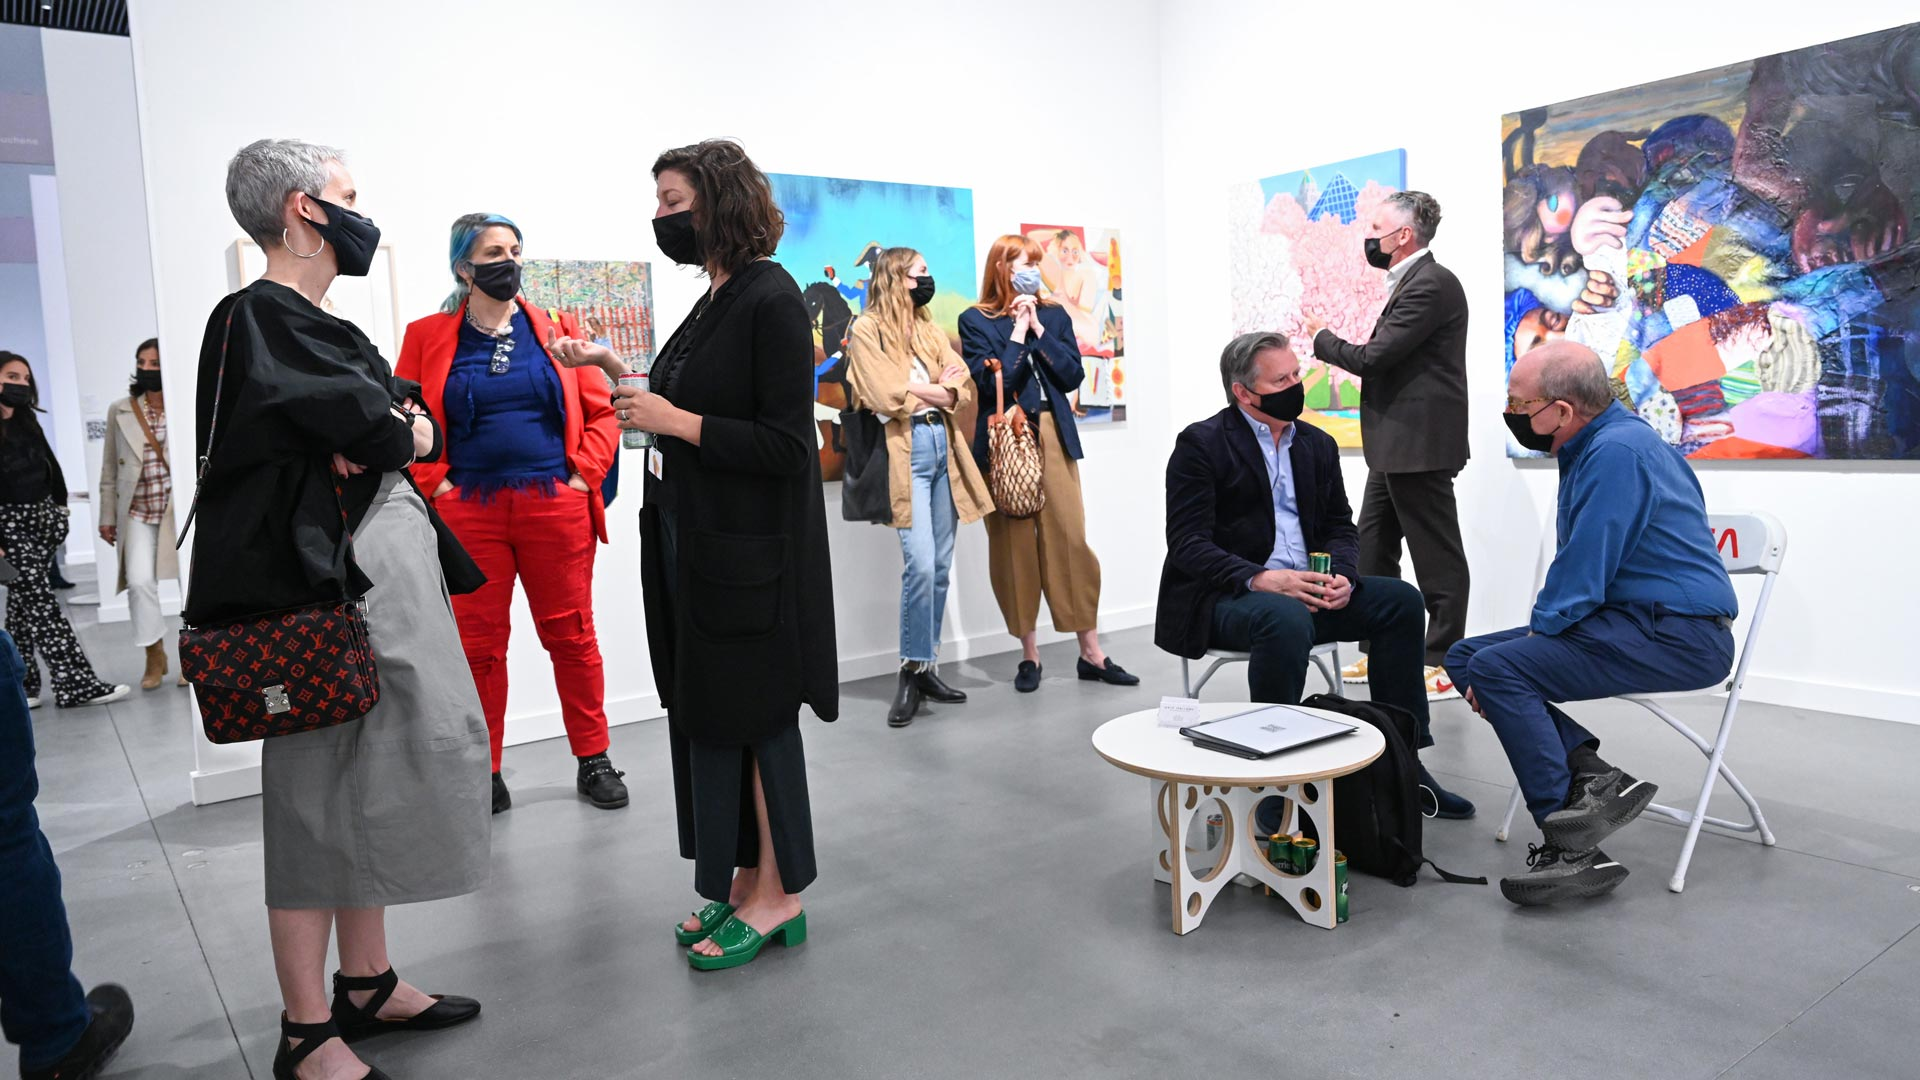 Group of people gathered in an art gallery admiring art and conversing.